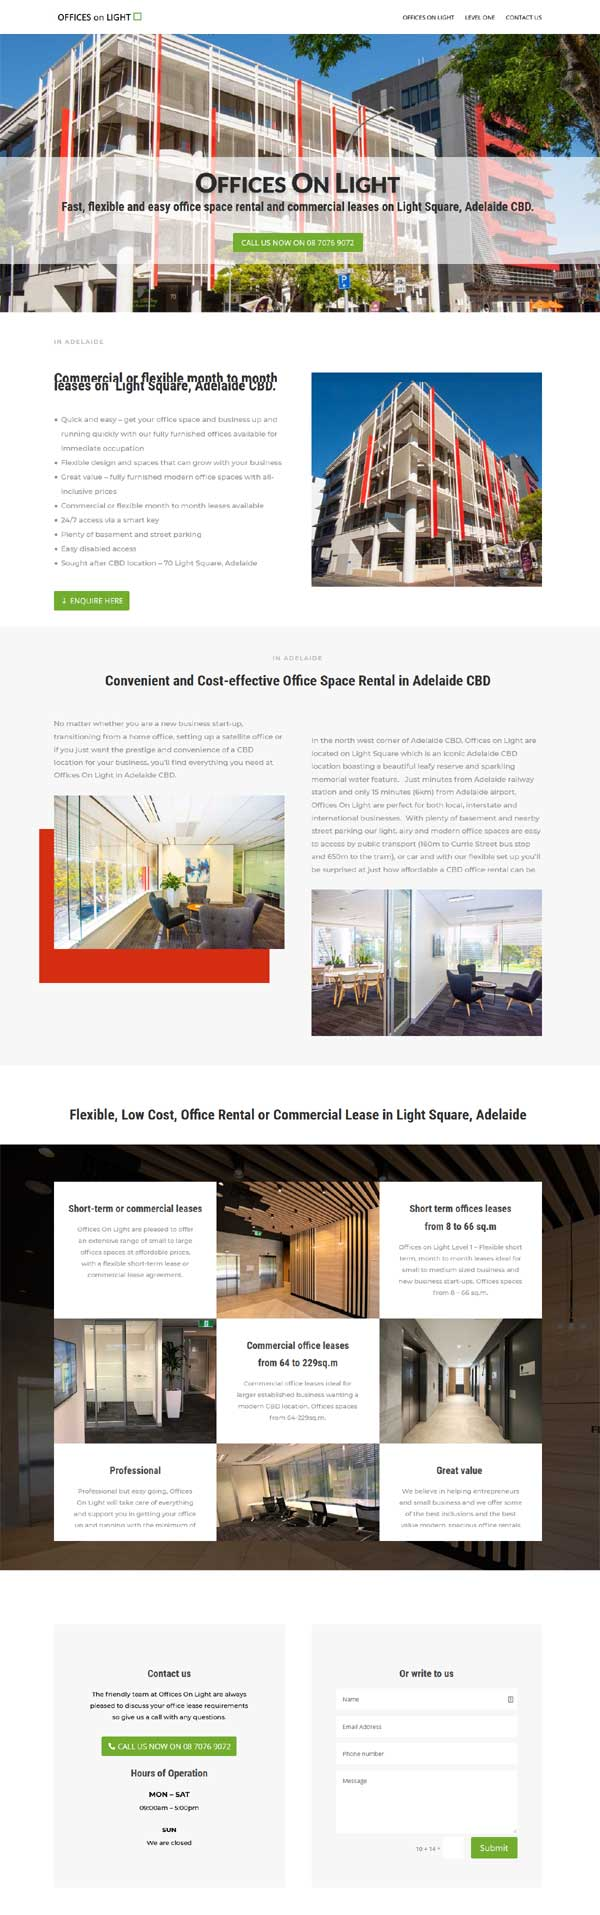 website design for offices on light in adelaide